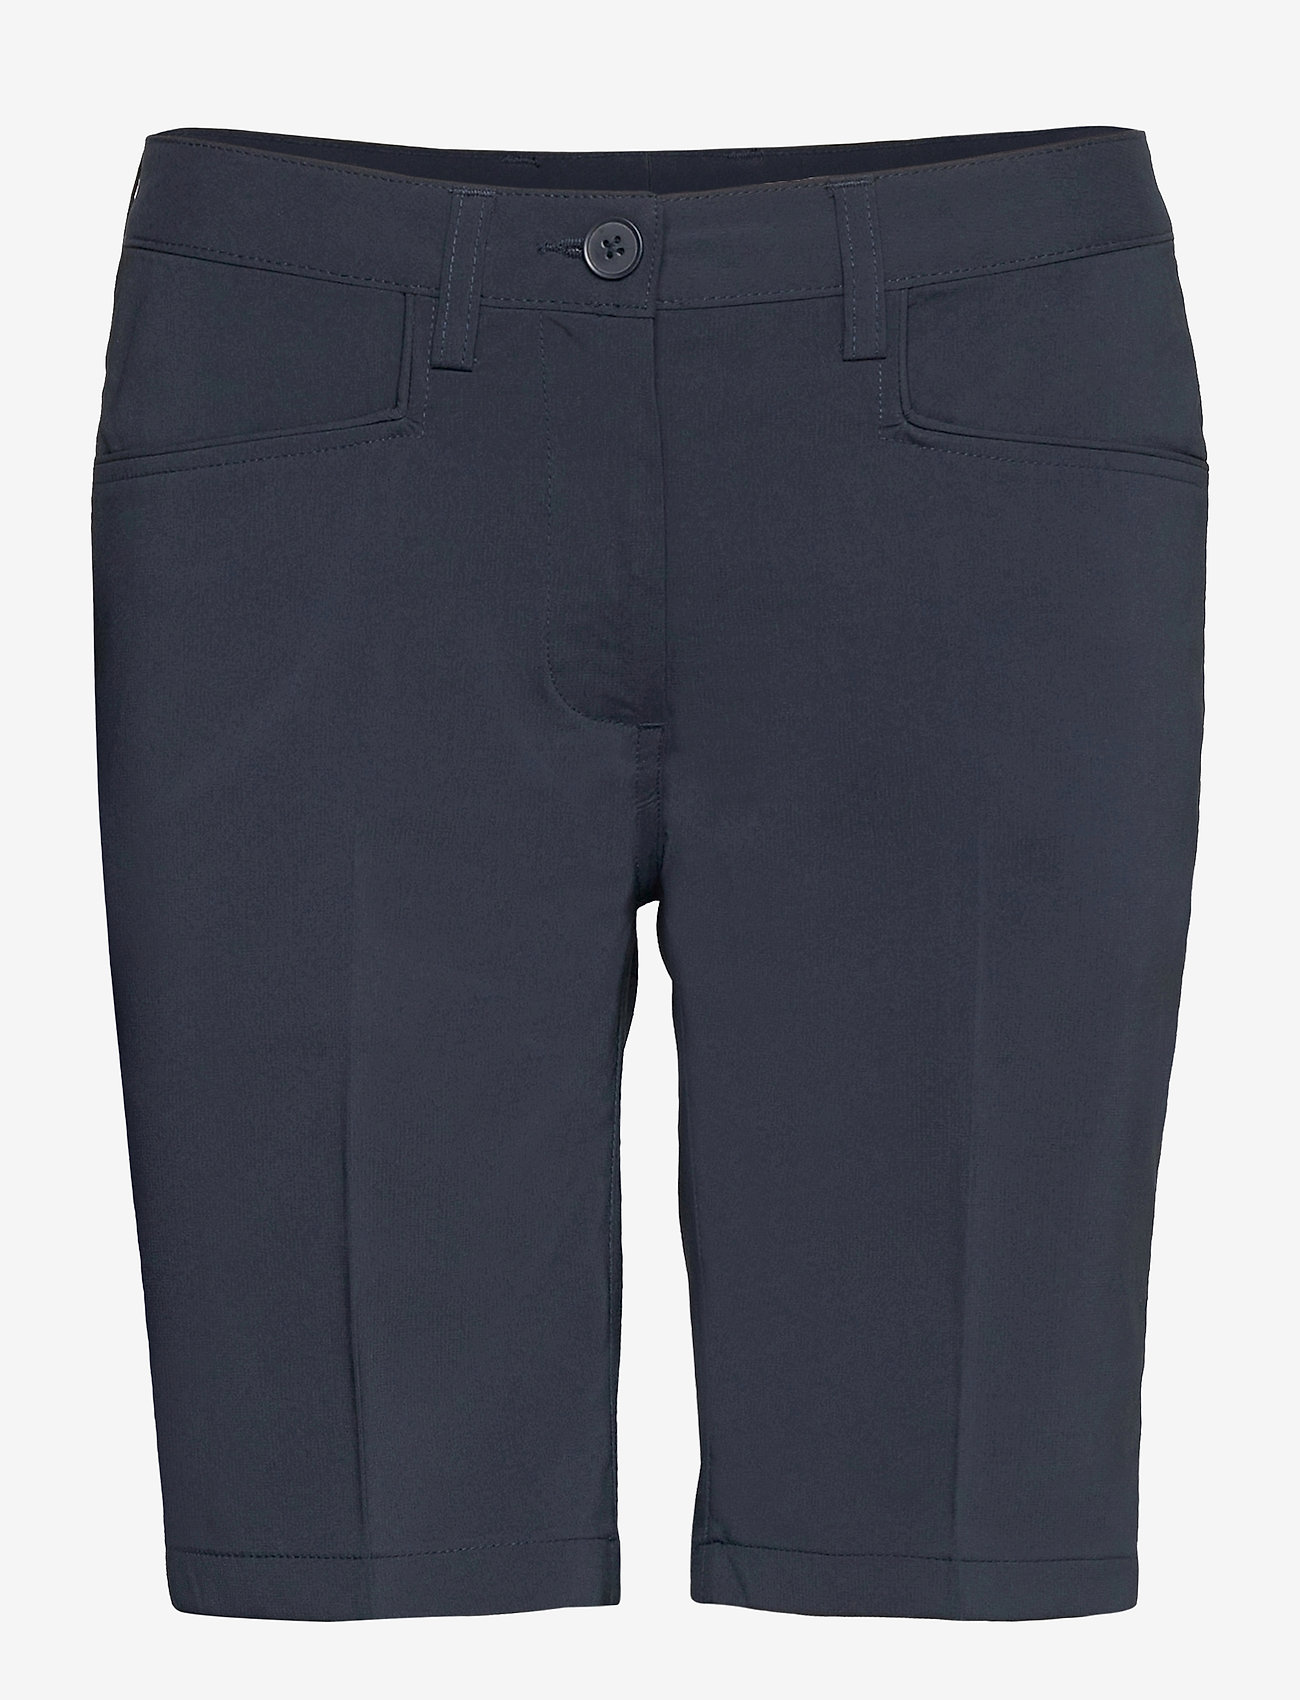 Abacus - Lds Cleek stretch shorts 46cm - golfbroeken - navy - 0